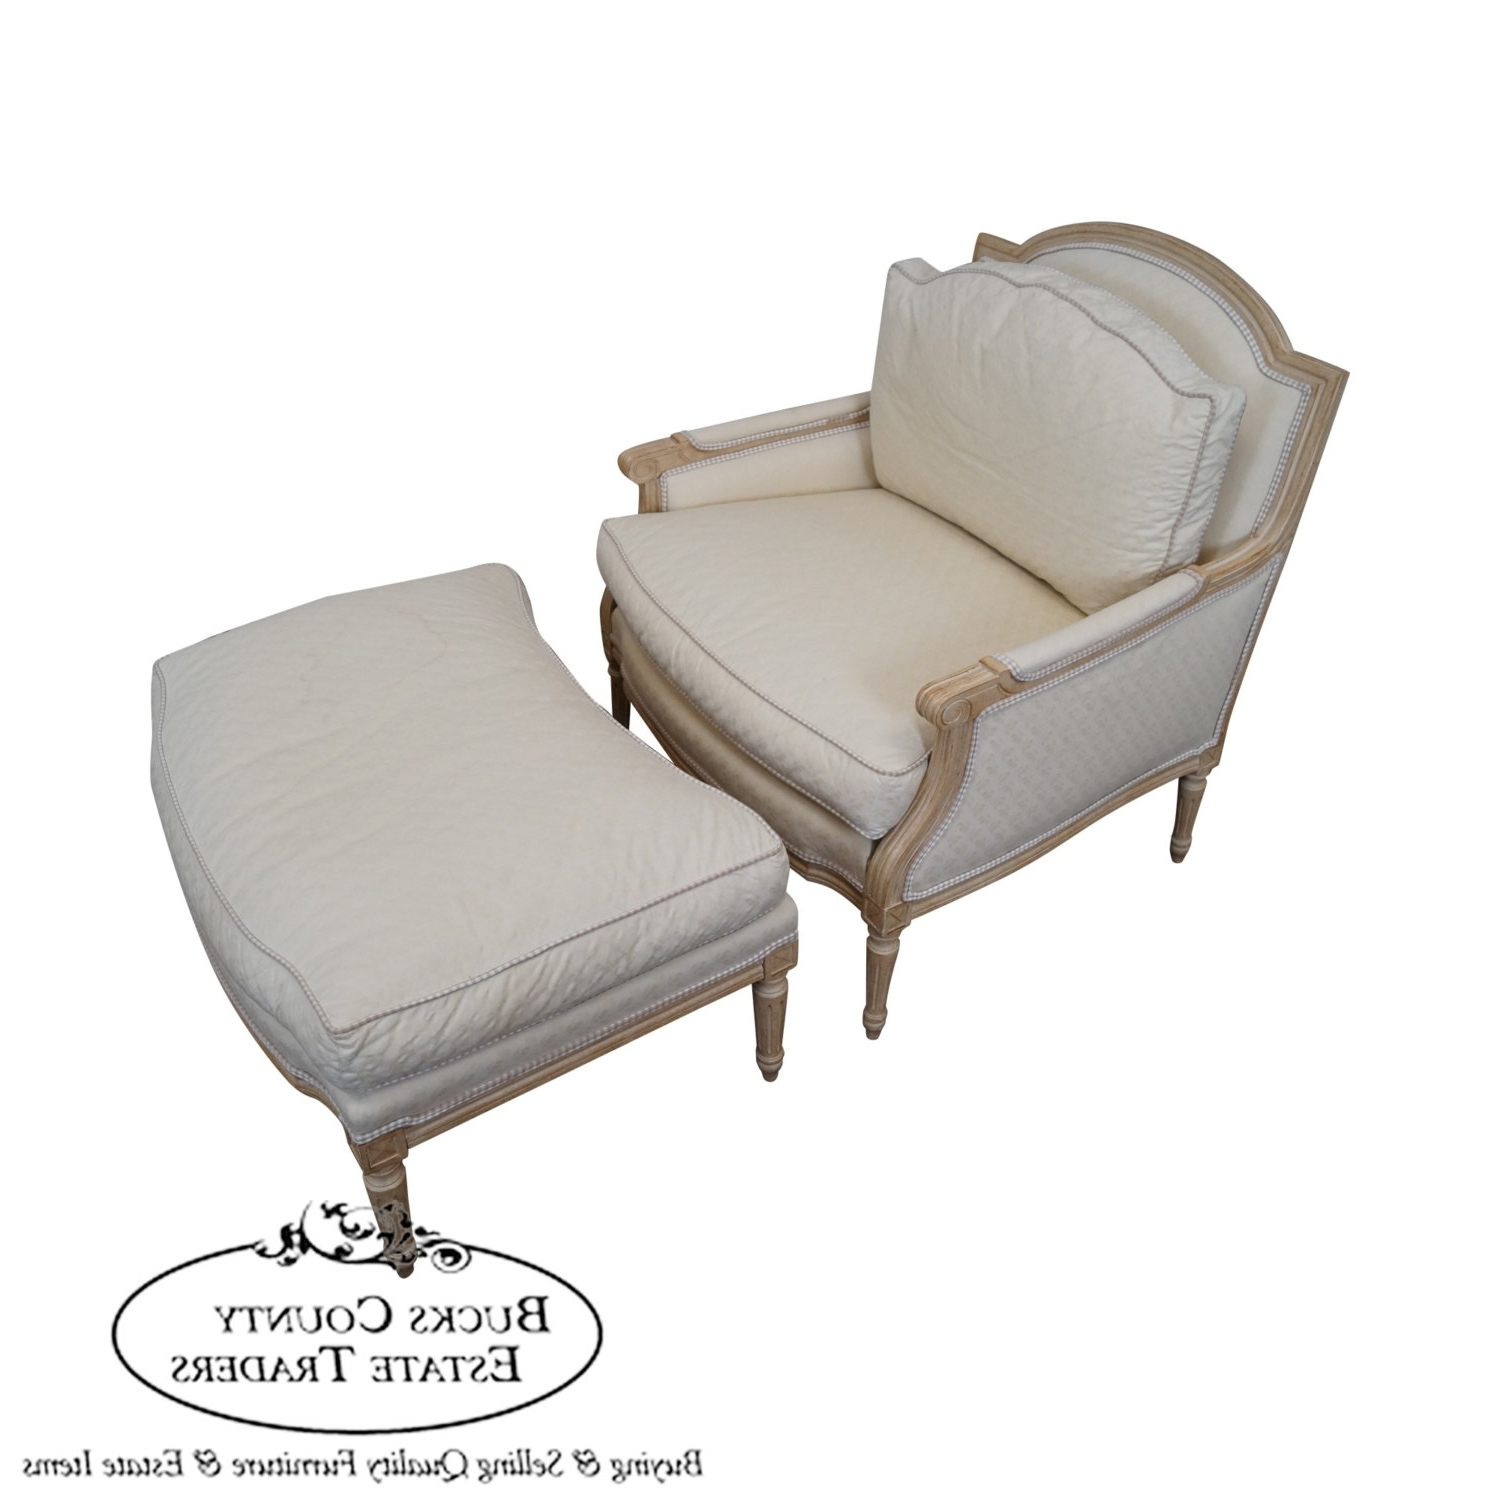 Most Recent Chaise Lounge Chairs With Ottoman Inside Heirloom Furniture French Louis Xv Style Bergere Chaise Lounge (View 11 of 15)